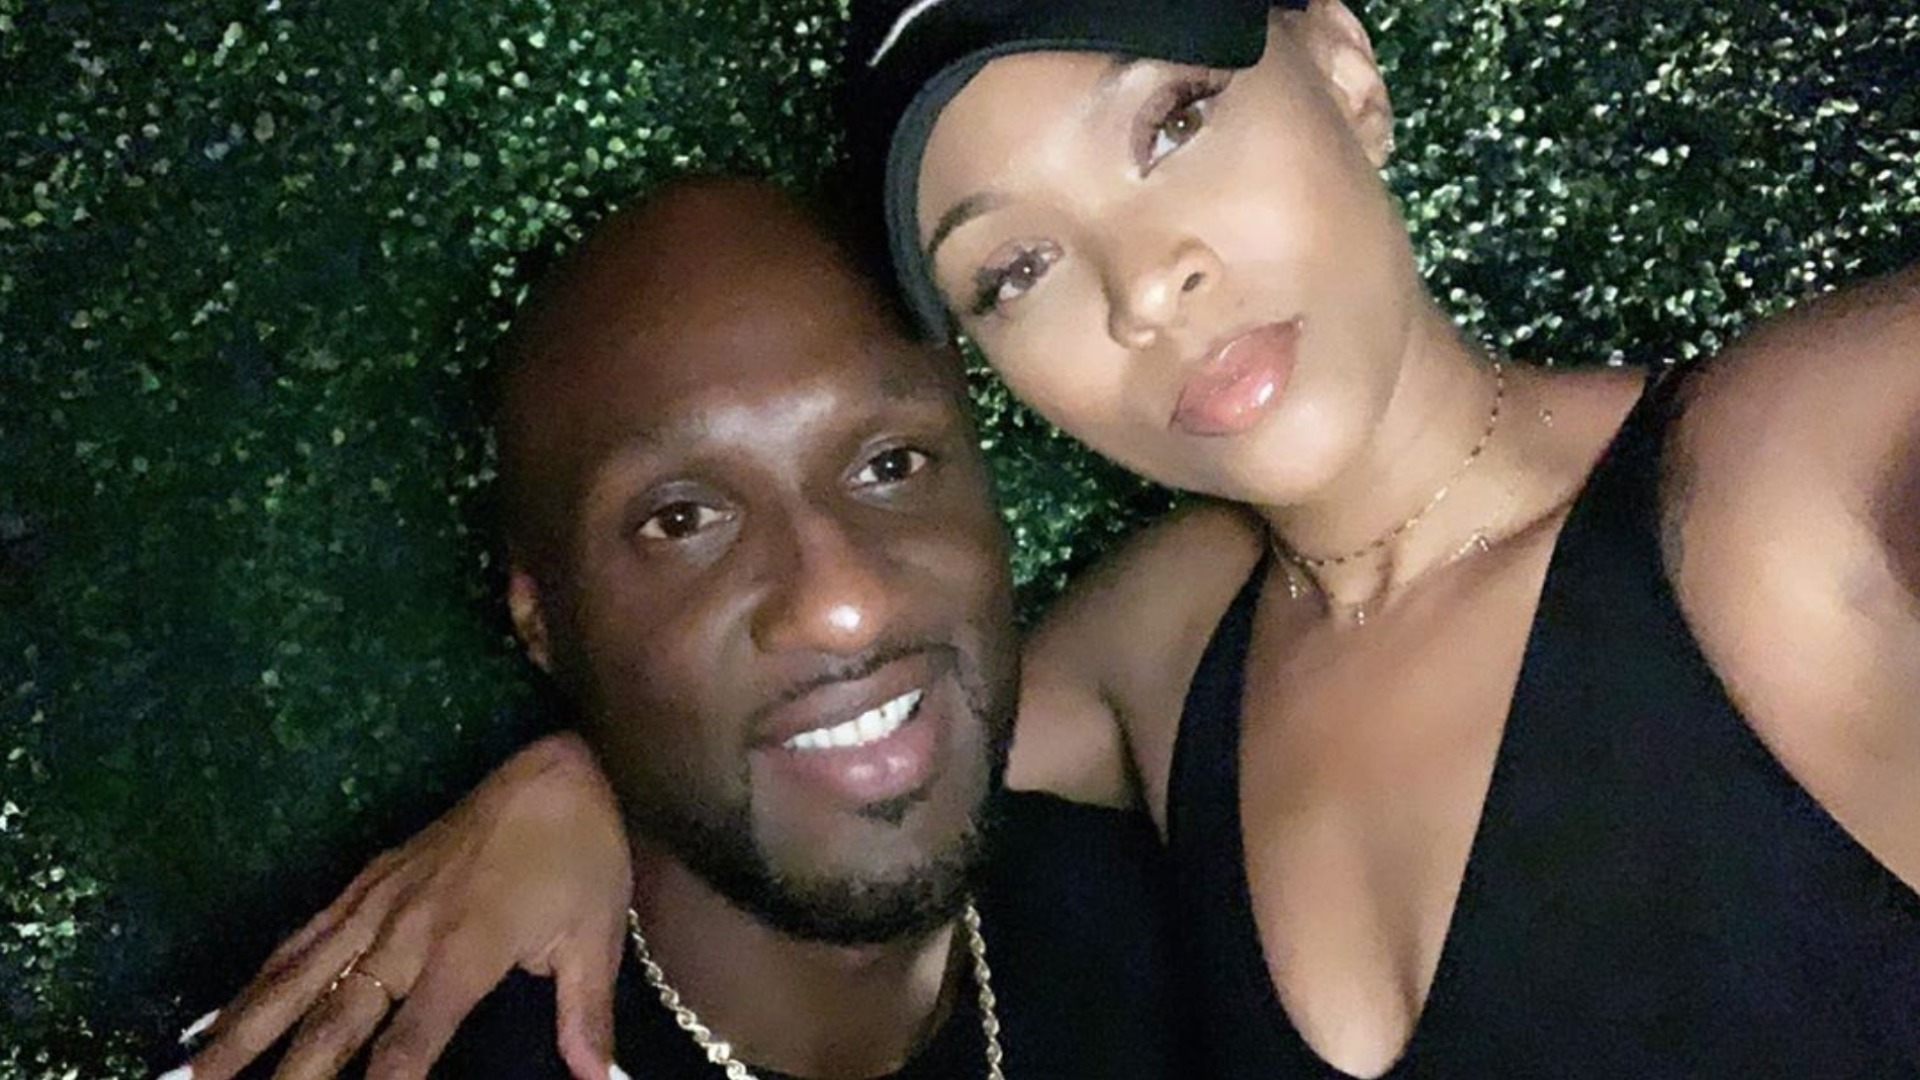 lamar-odom-and-sabrina-parrs-grieving-process-after-kobe-bryants-passing-led-to-them-breaking-their-abstinence-she-says-heres-why